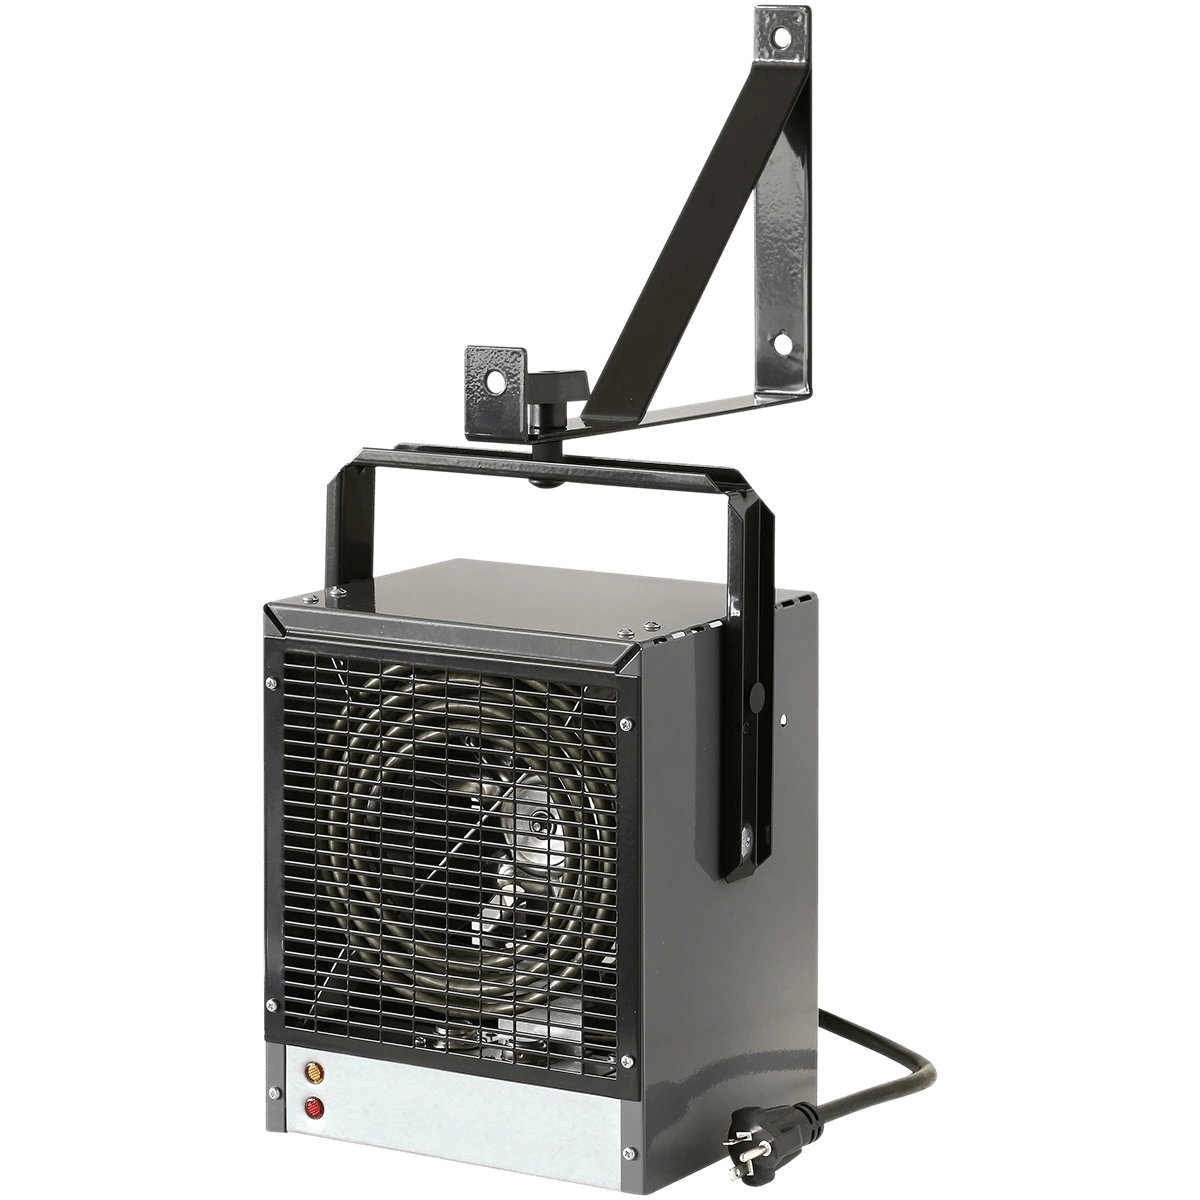 Electric Garage Heater Black Friday Dimplex Dgwh4031 Electric Garage And Workshop Heater